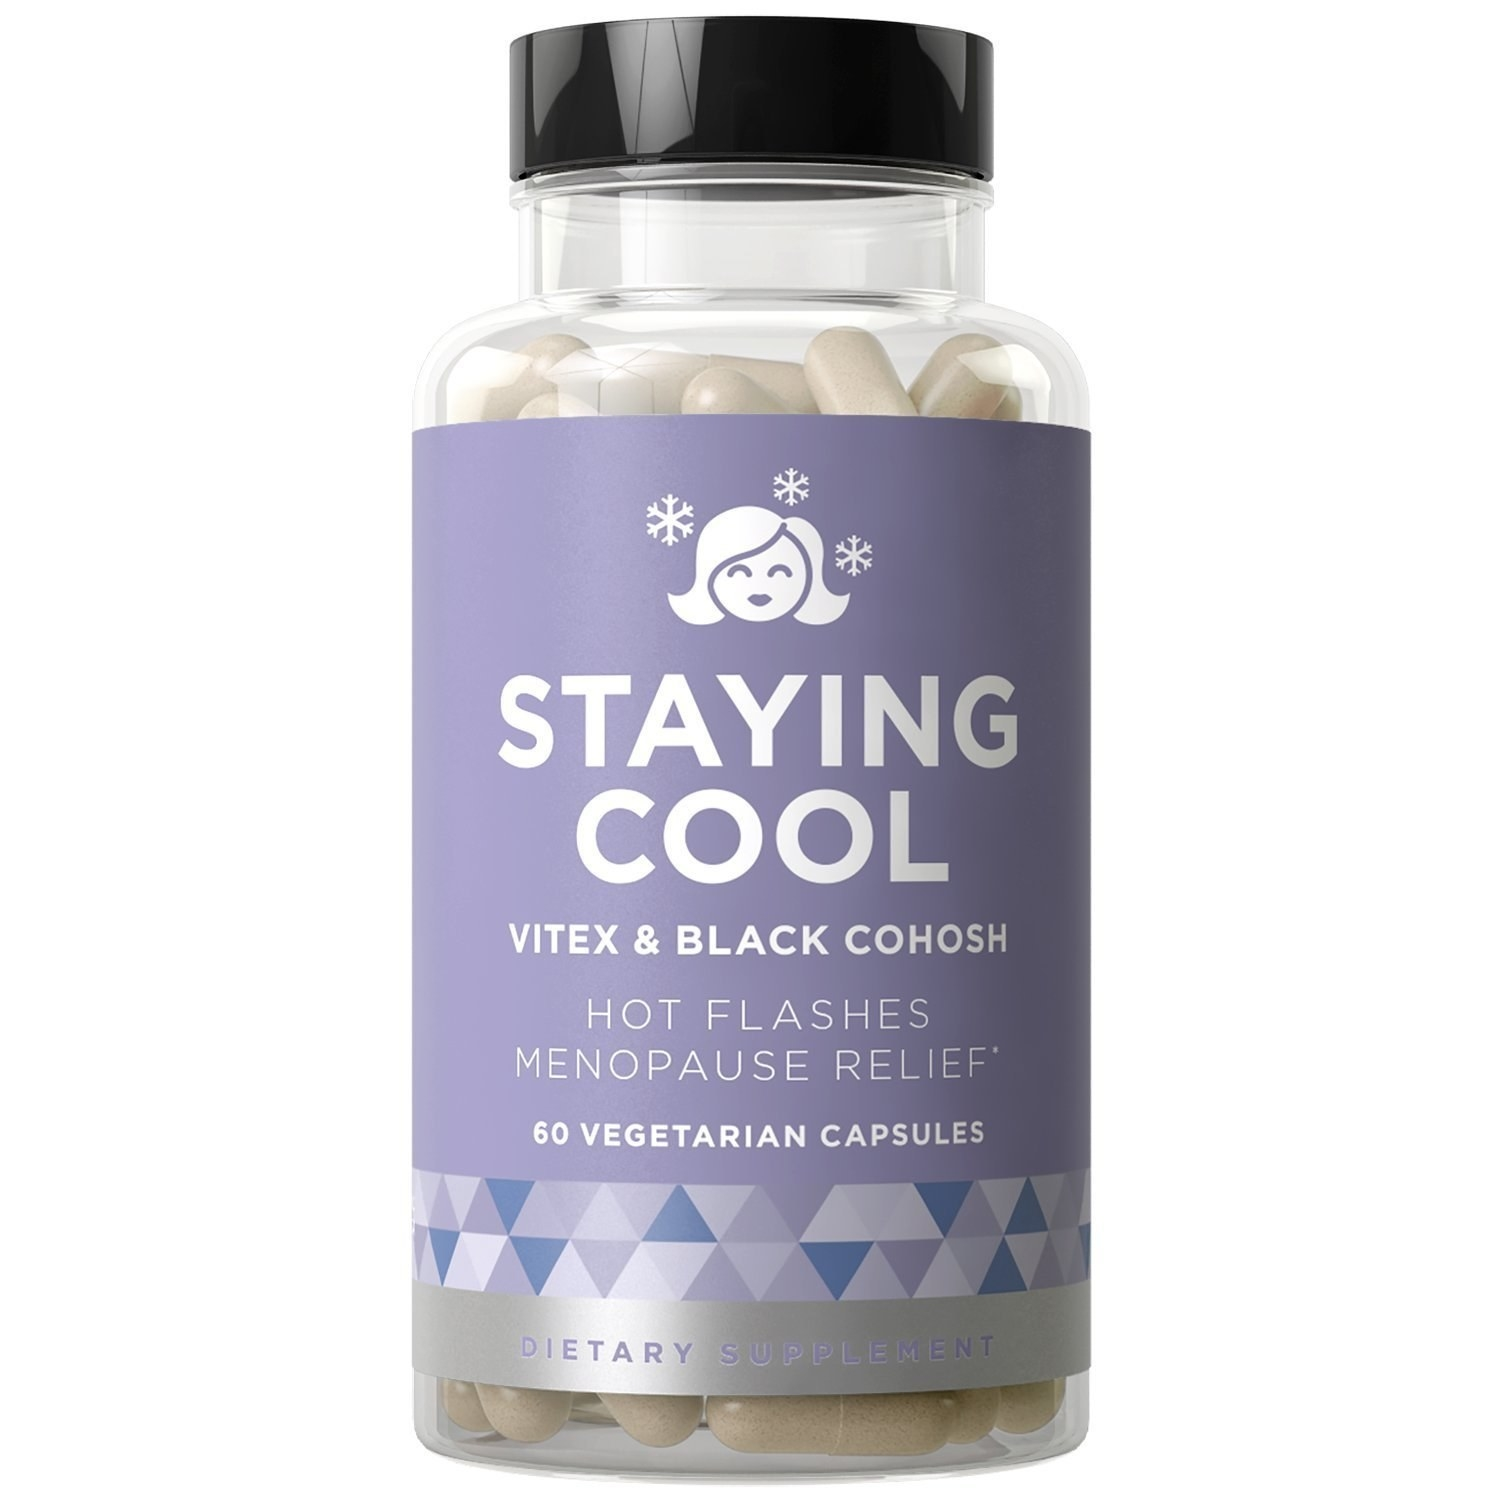 A bottle of Staying Cool Hot Flashes & Menopause Natural Relief supplements